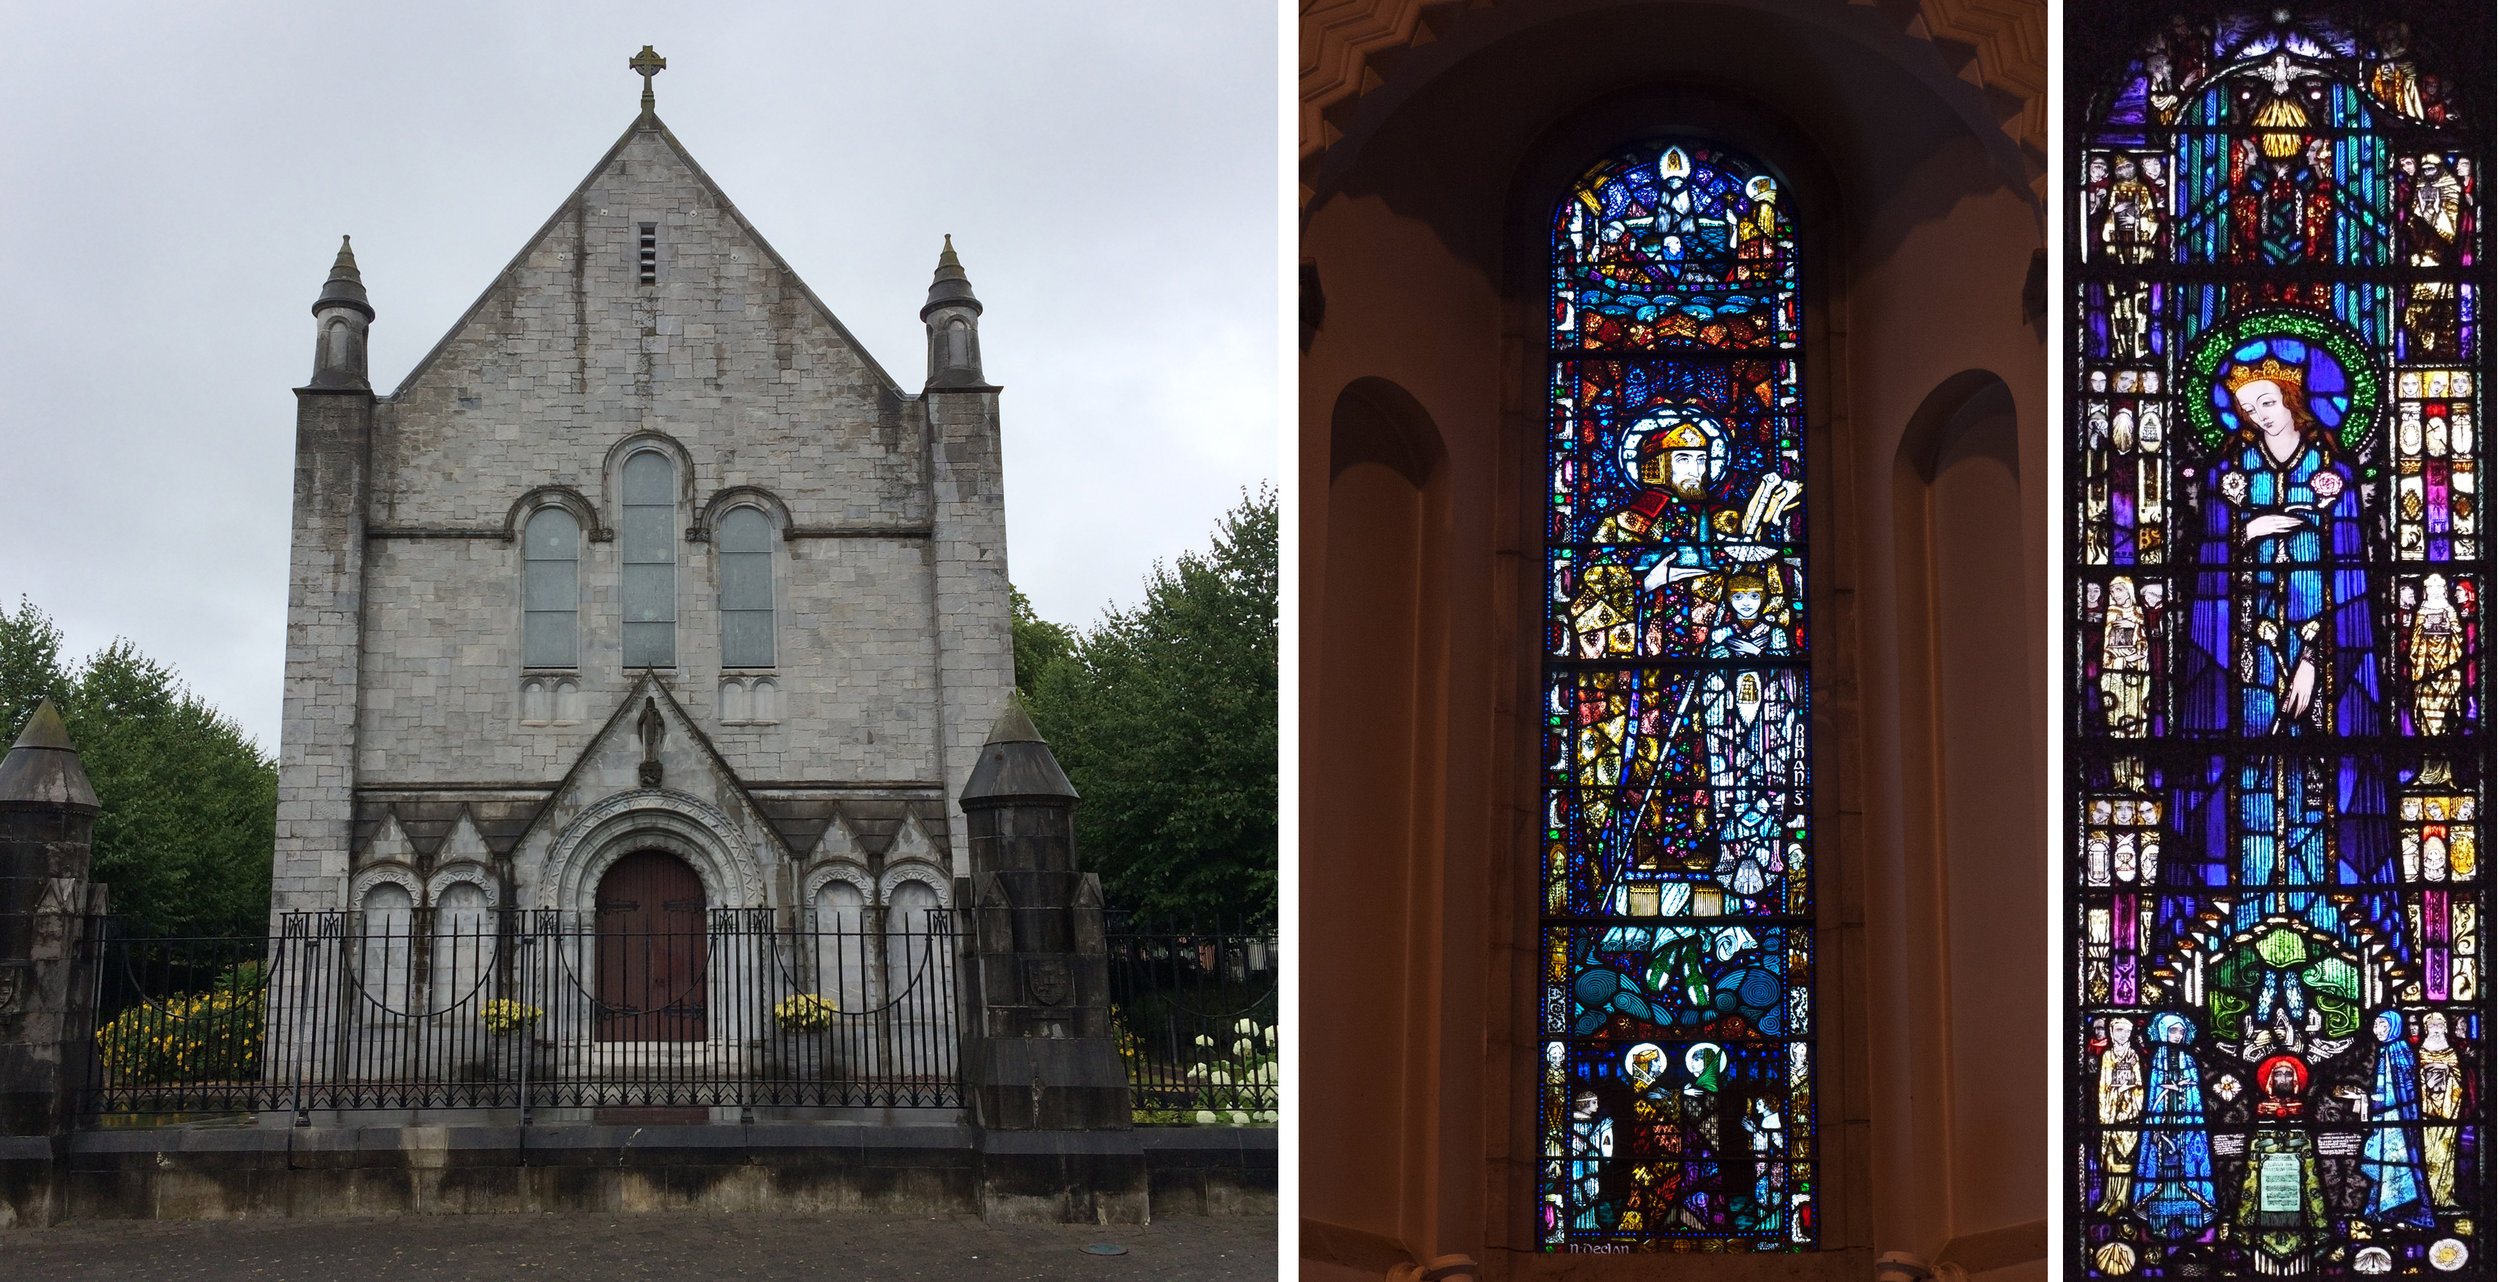 The Honan Chapel, University College Cork, exterior: 2 of HC's windows: St Declan 1916, Our Lady of Sorrows 1917